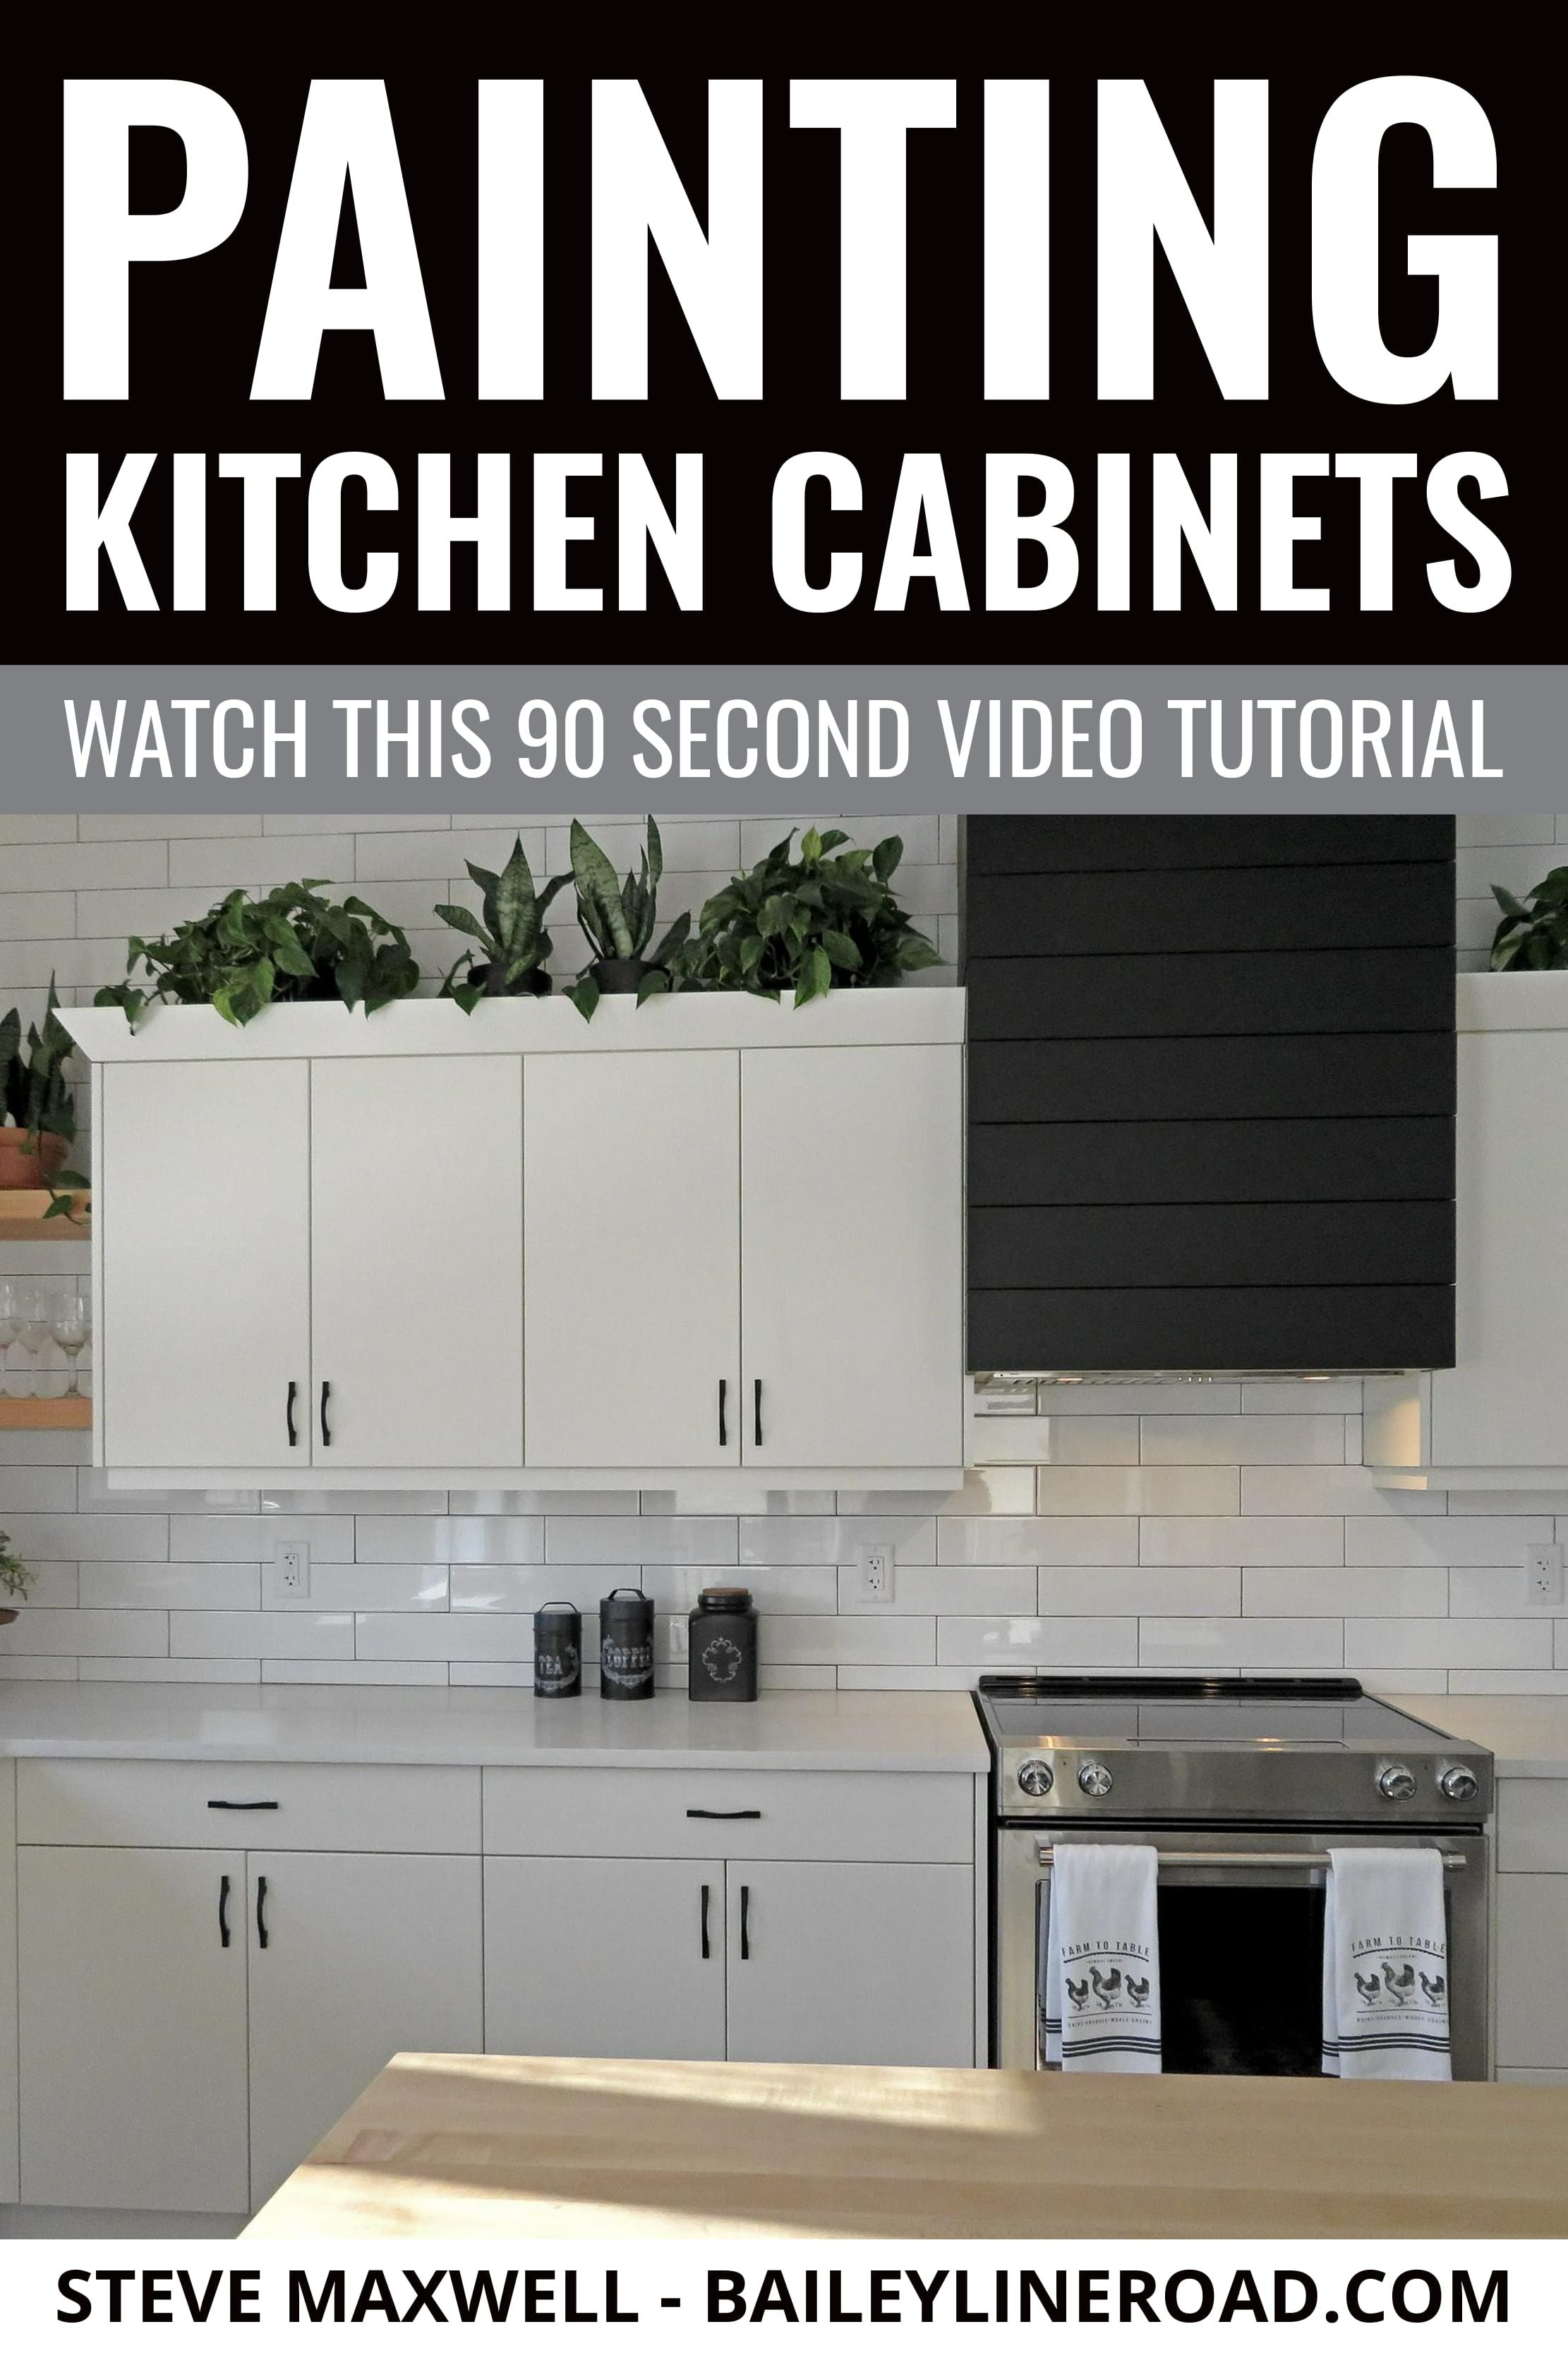 Painting Kitchen Cabinets Watch This 90 Second Video Tutorial Baileylineroad Painting Kitchen Cabinets Kitchen Cabinets Kitchen